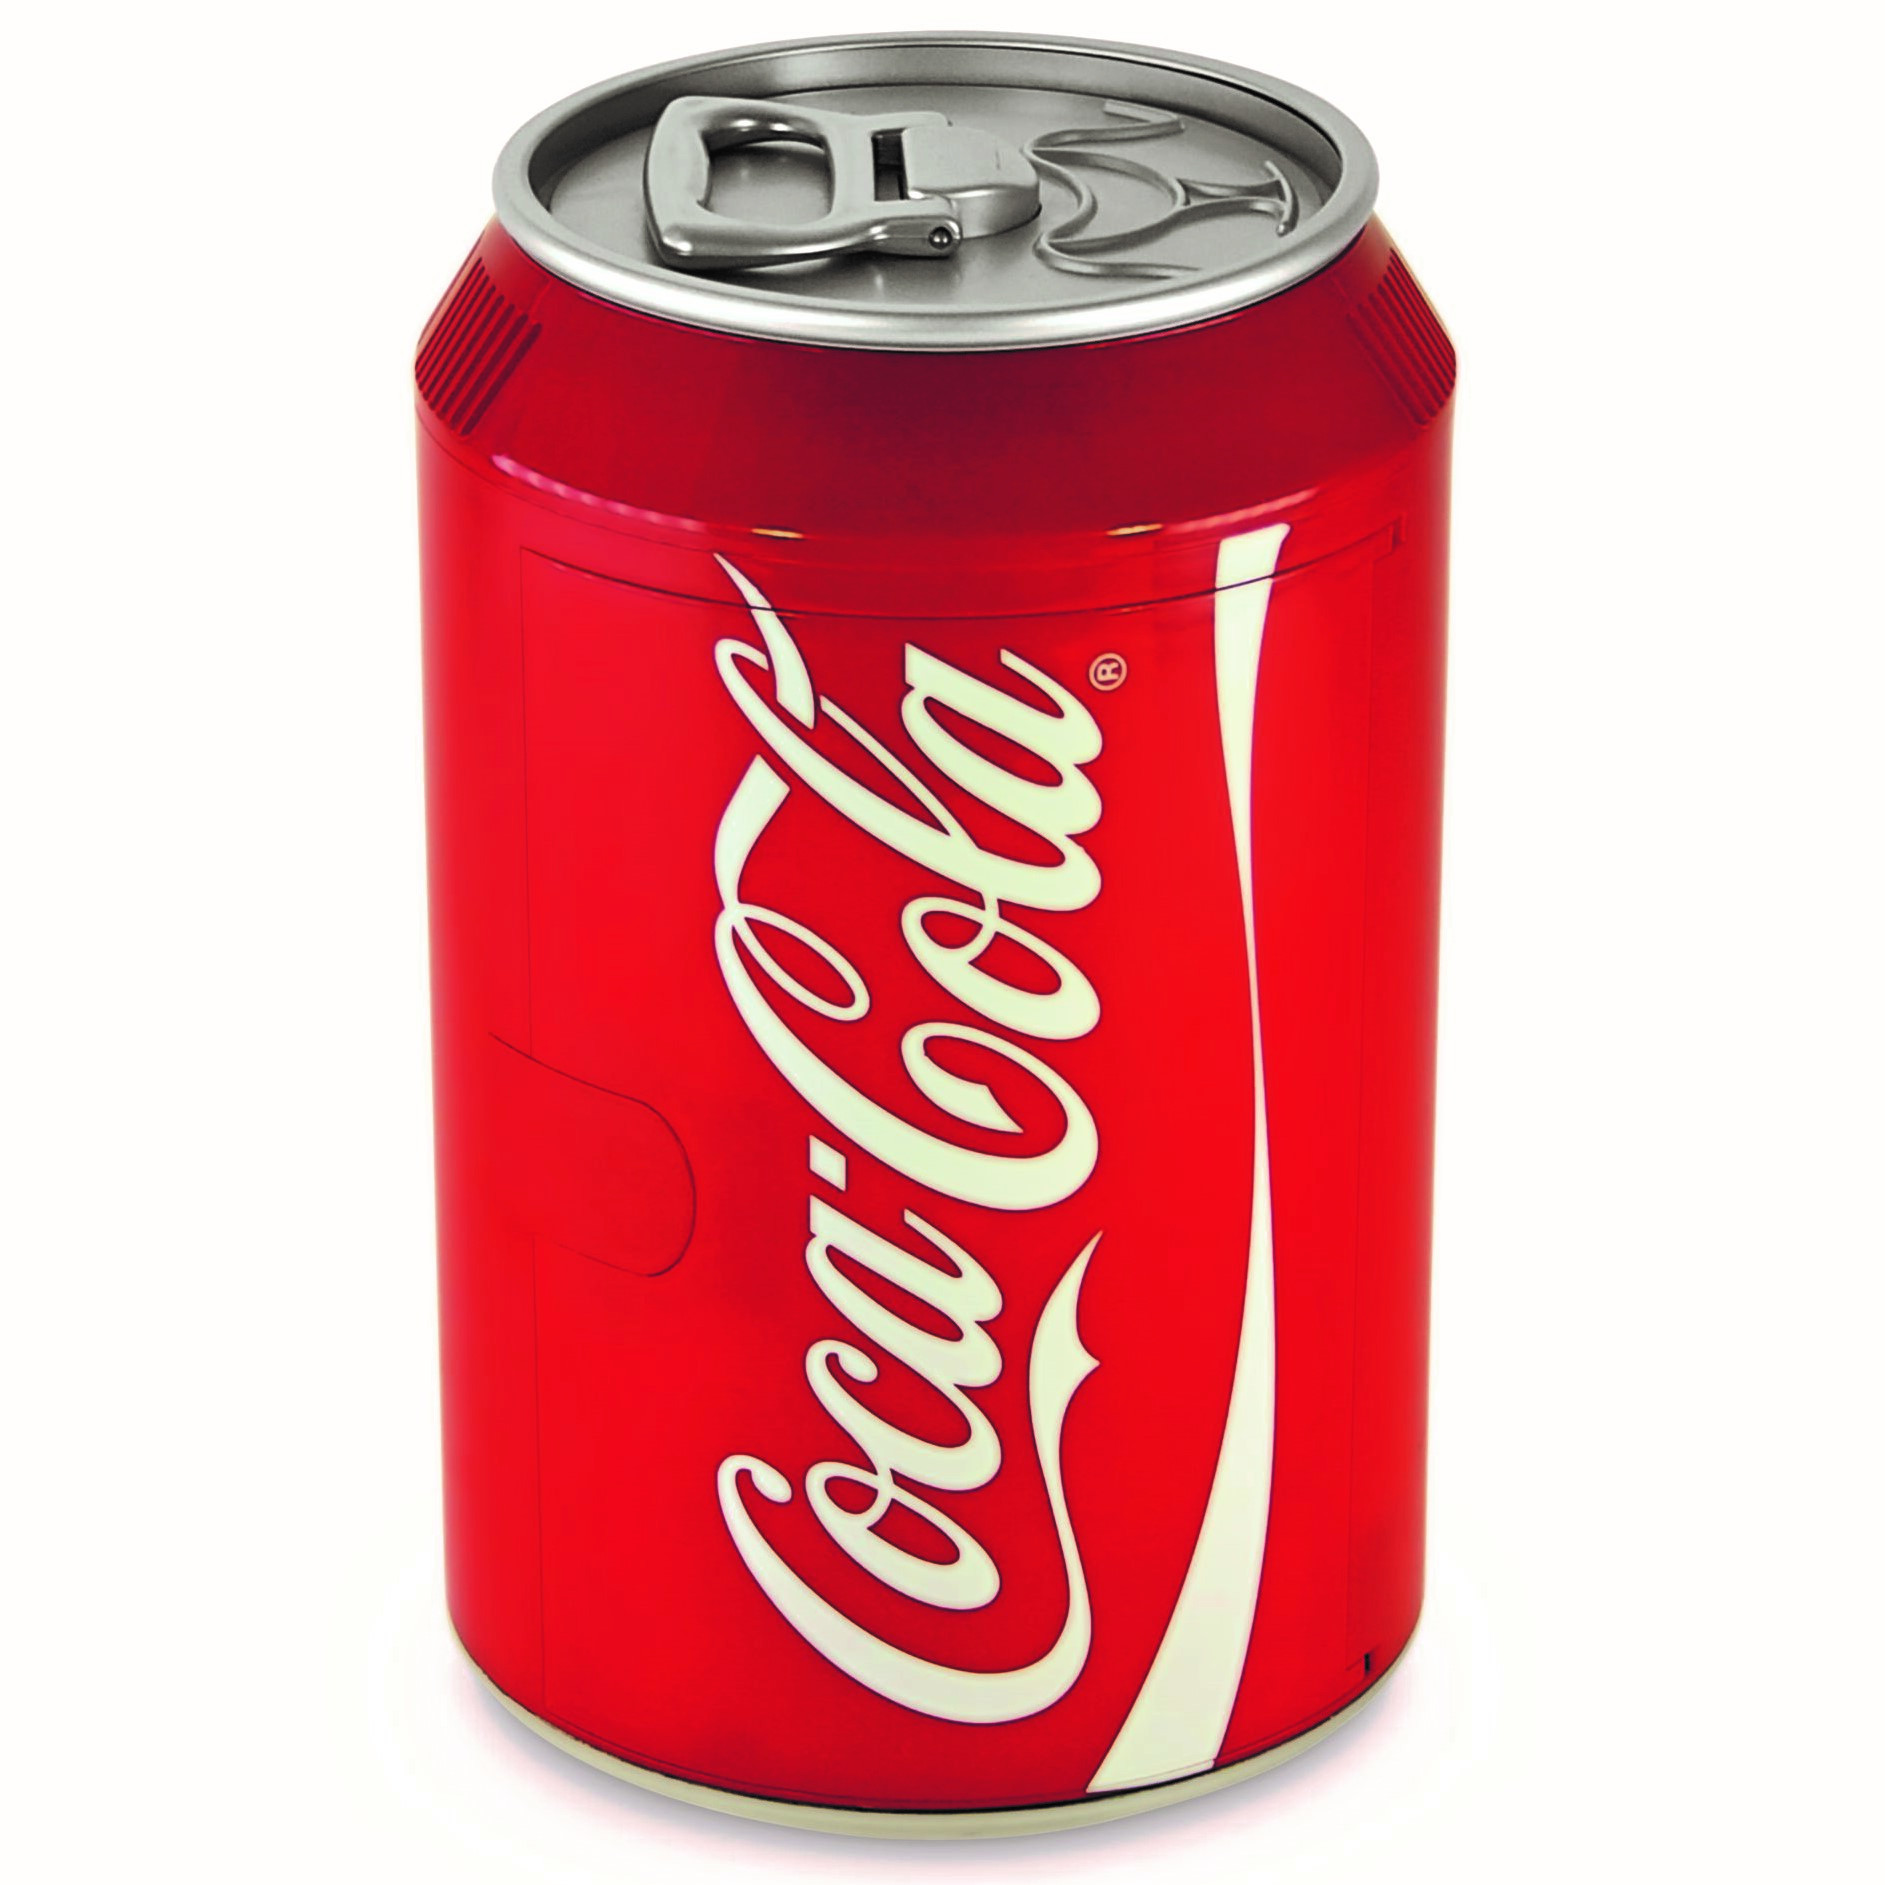 Jääkaappi Dometic Mobicool Coca-Cola Cool Can 10 12/230 V 477x322x322 mm